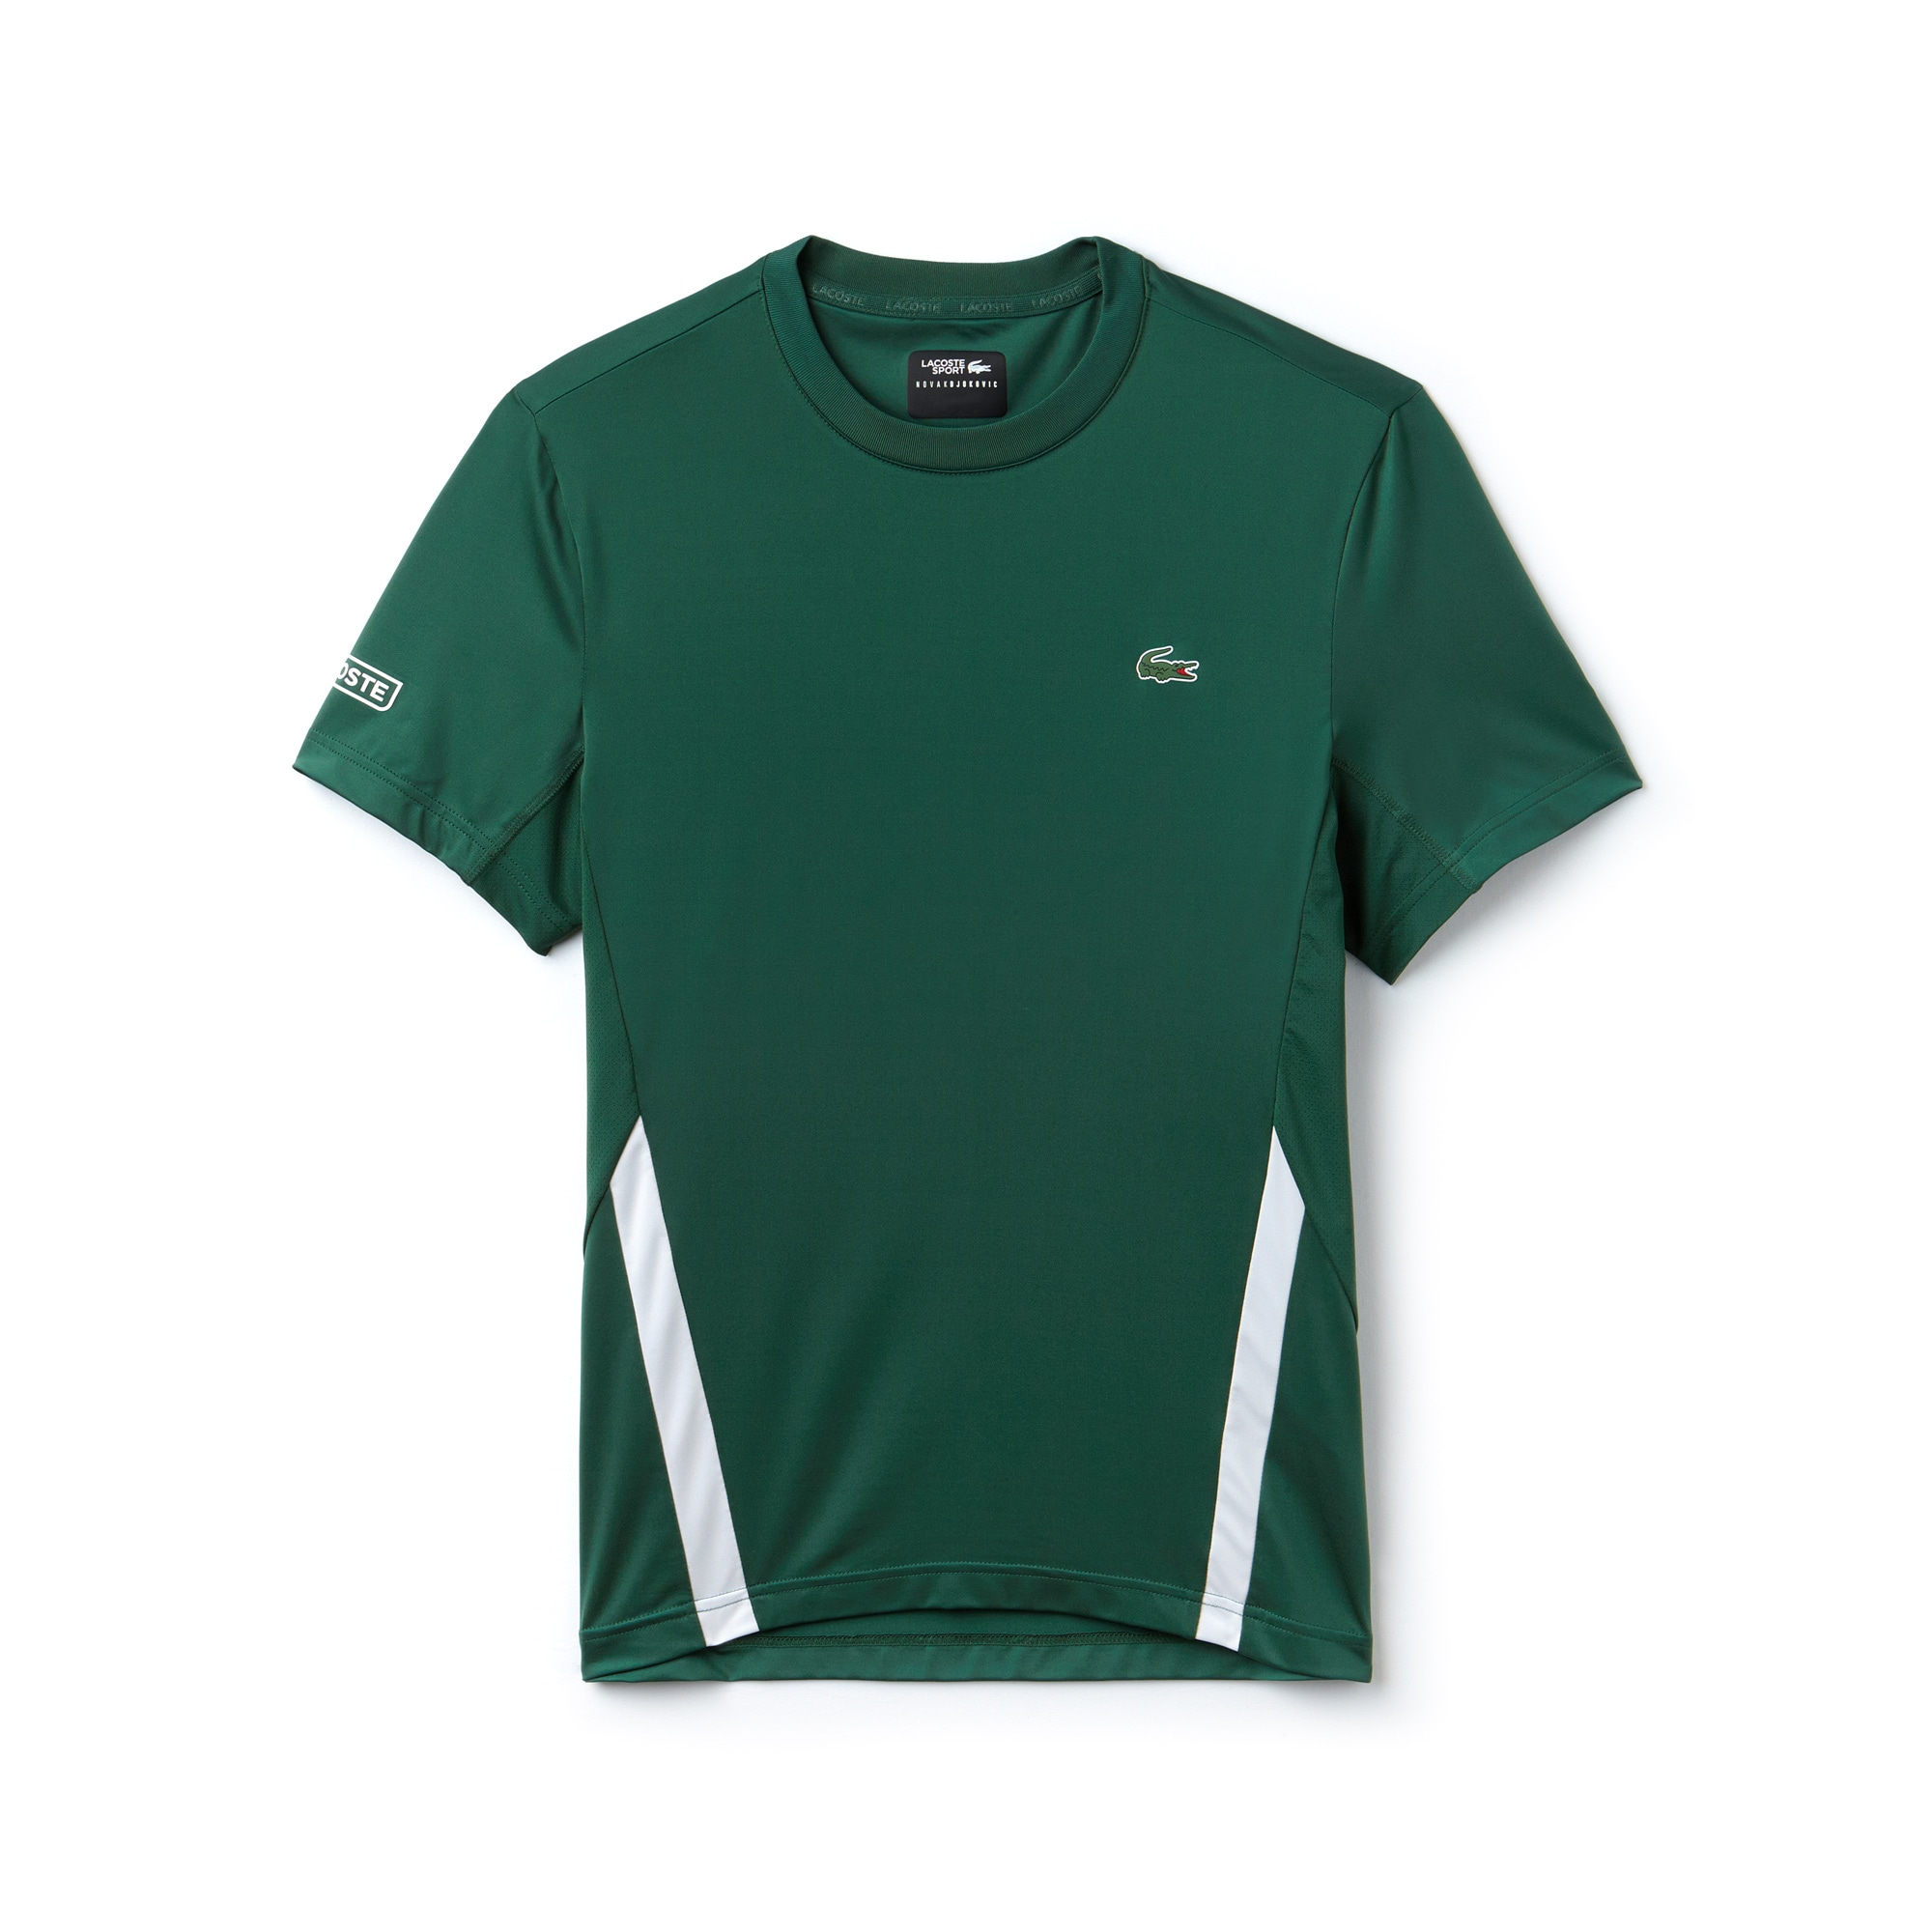 Lacoste SPORT NOVAK DJOKOVIC-OFF COURT COLLECTION-T-shirt heren ronde hals technische jersey met stretch